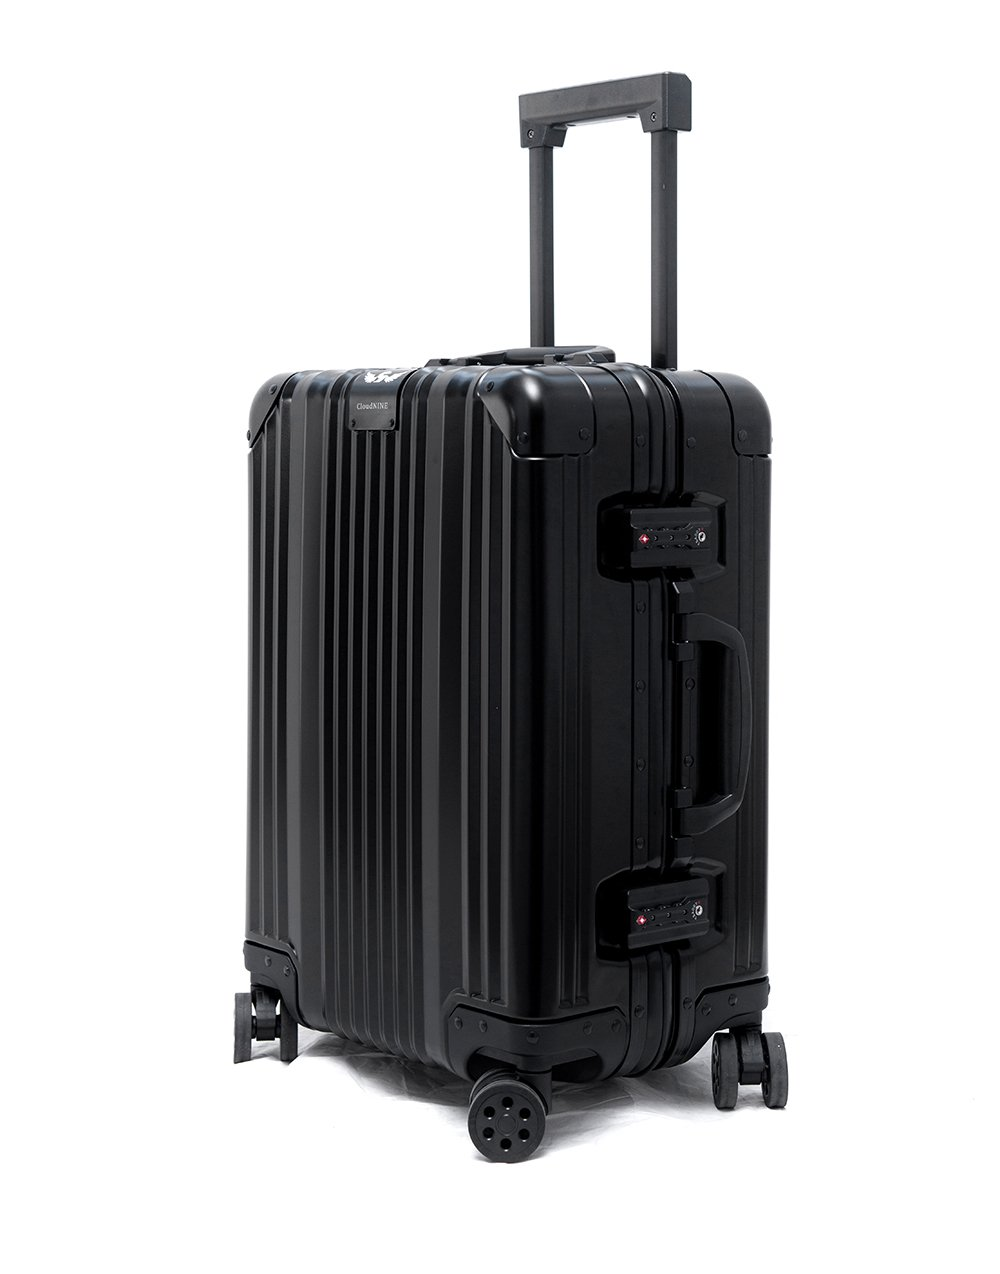 Cloud 9 - All Aluminum Luxury Hard Case Carry-On 20'' Durable with 360 Degree 4 Wheel Spinner TSA Approved (2017 Model) by Newbee Fashion